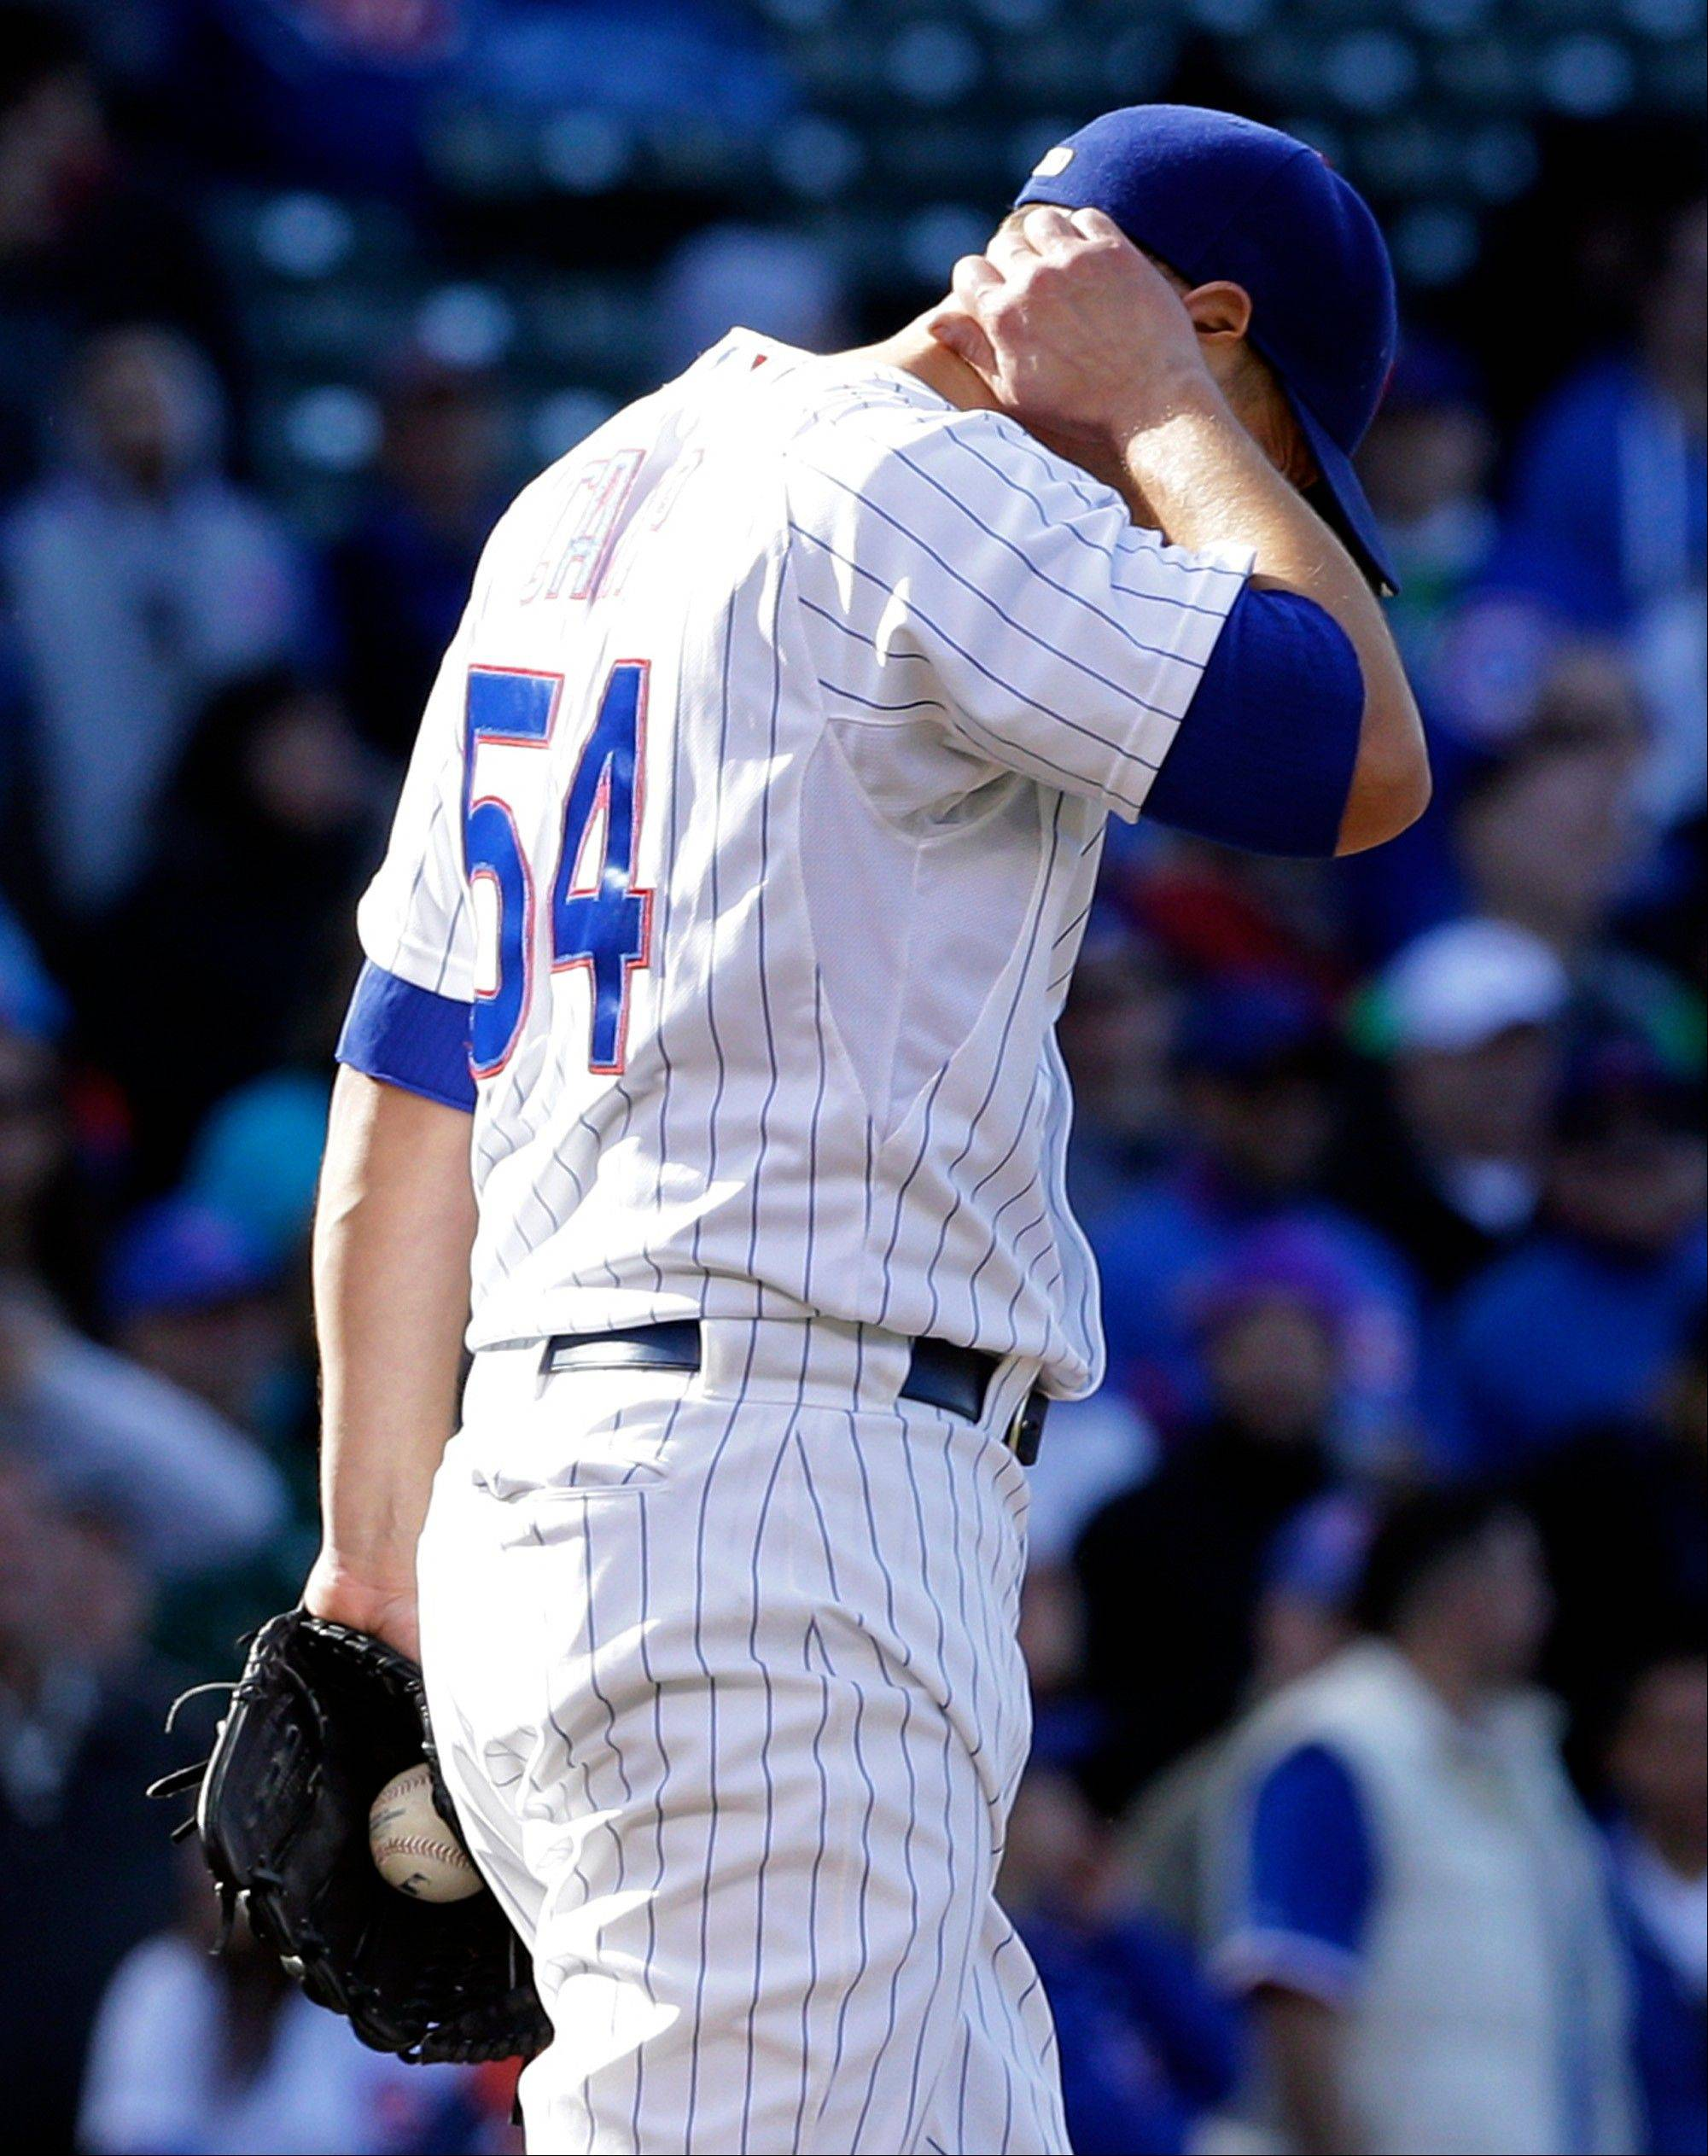 Cubs relief pitcher Shawn Camp reacts after the Giants' Hunter Pence hit a solo home run on a 2-2 pitch with two outs to tie the game in the ninth inning Sunday at Wrigley Field. The Giants won 10-7 in 10 innings.